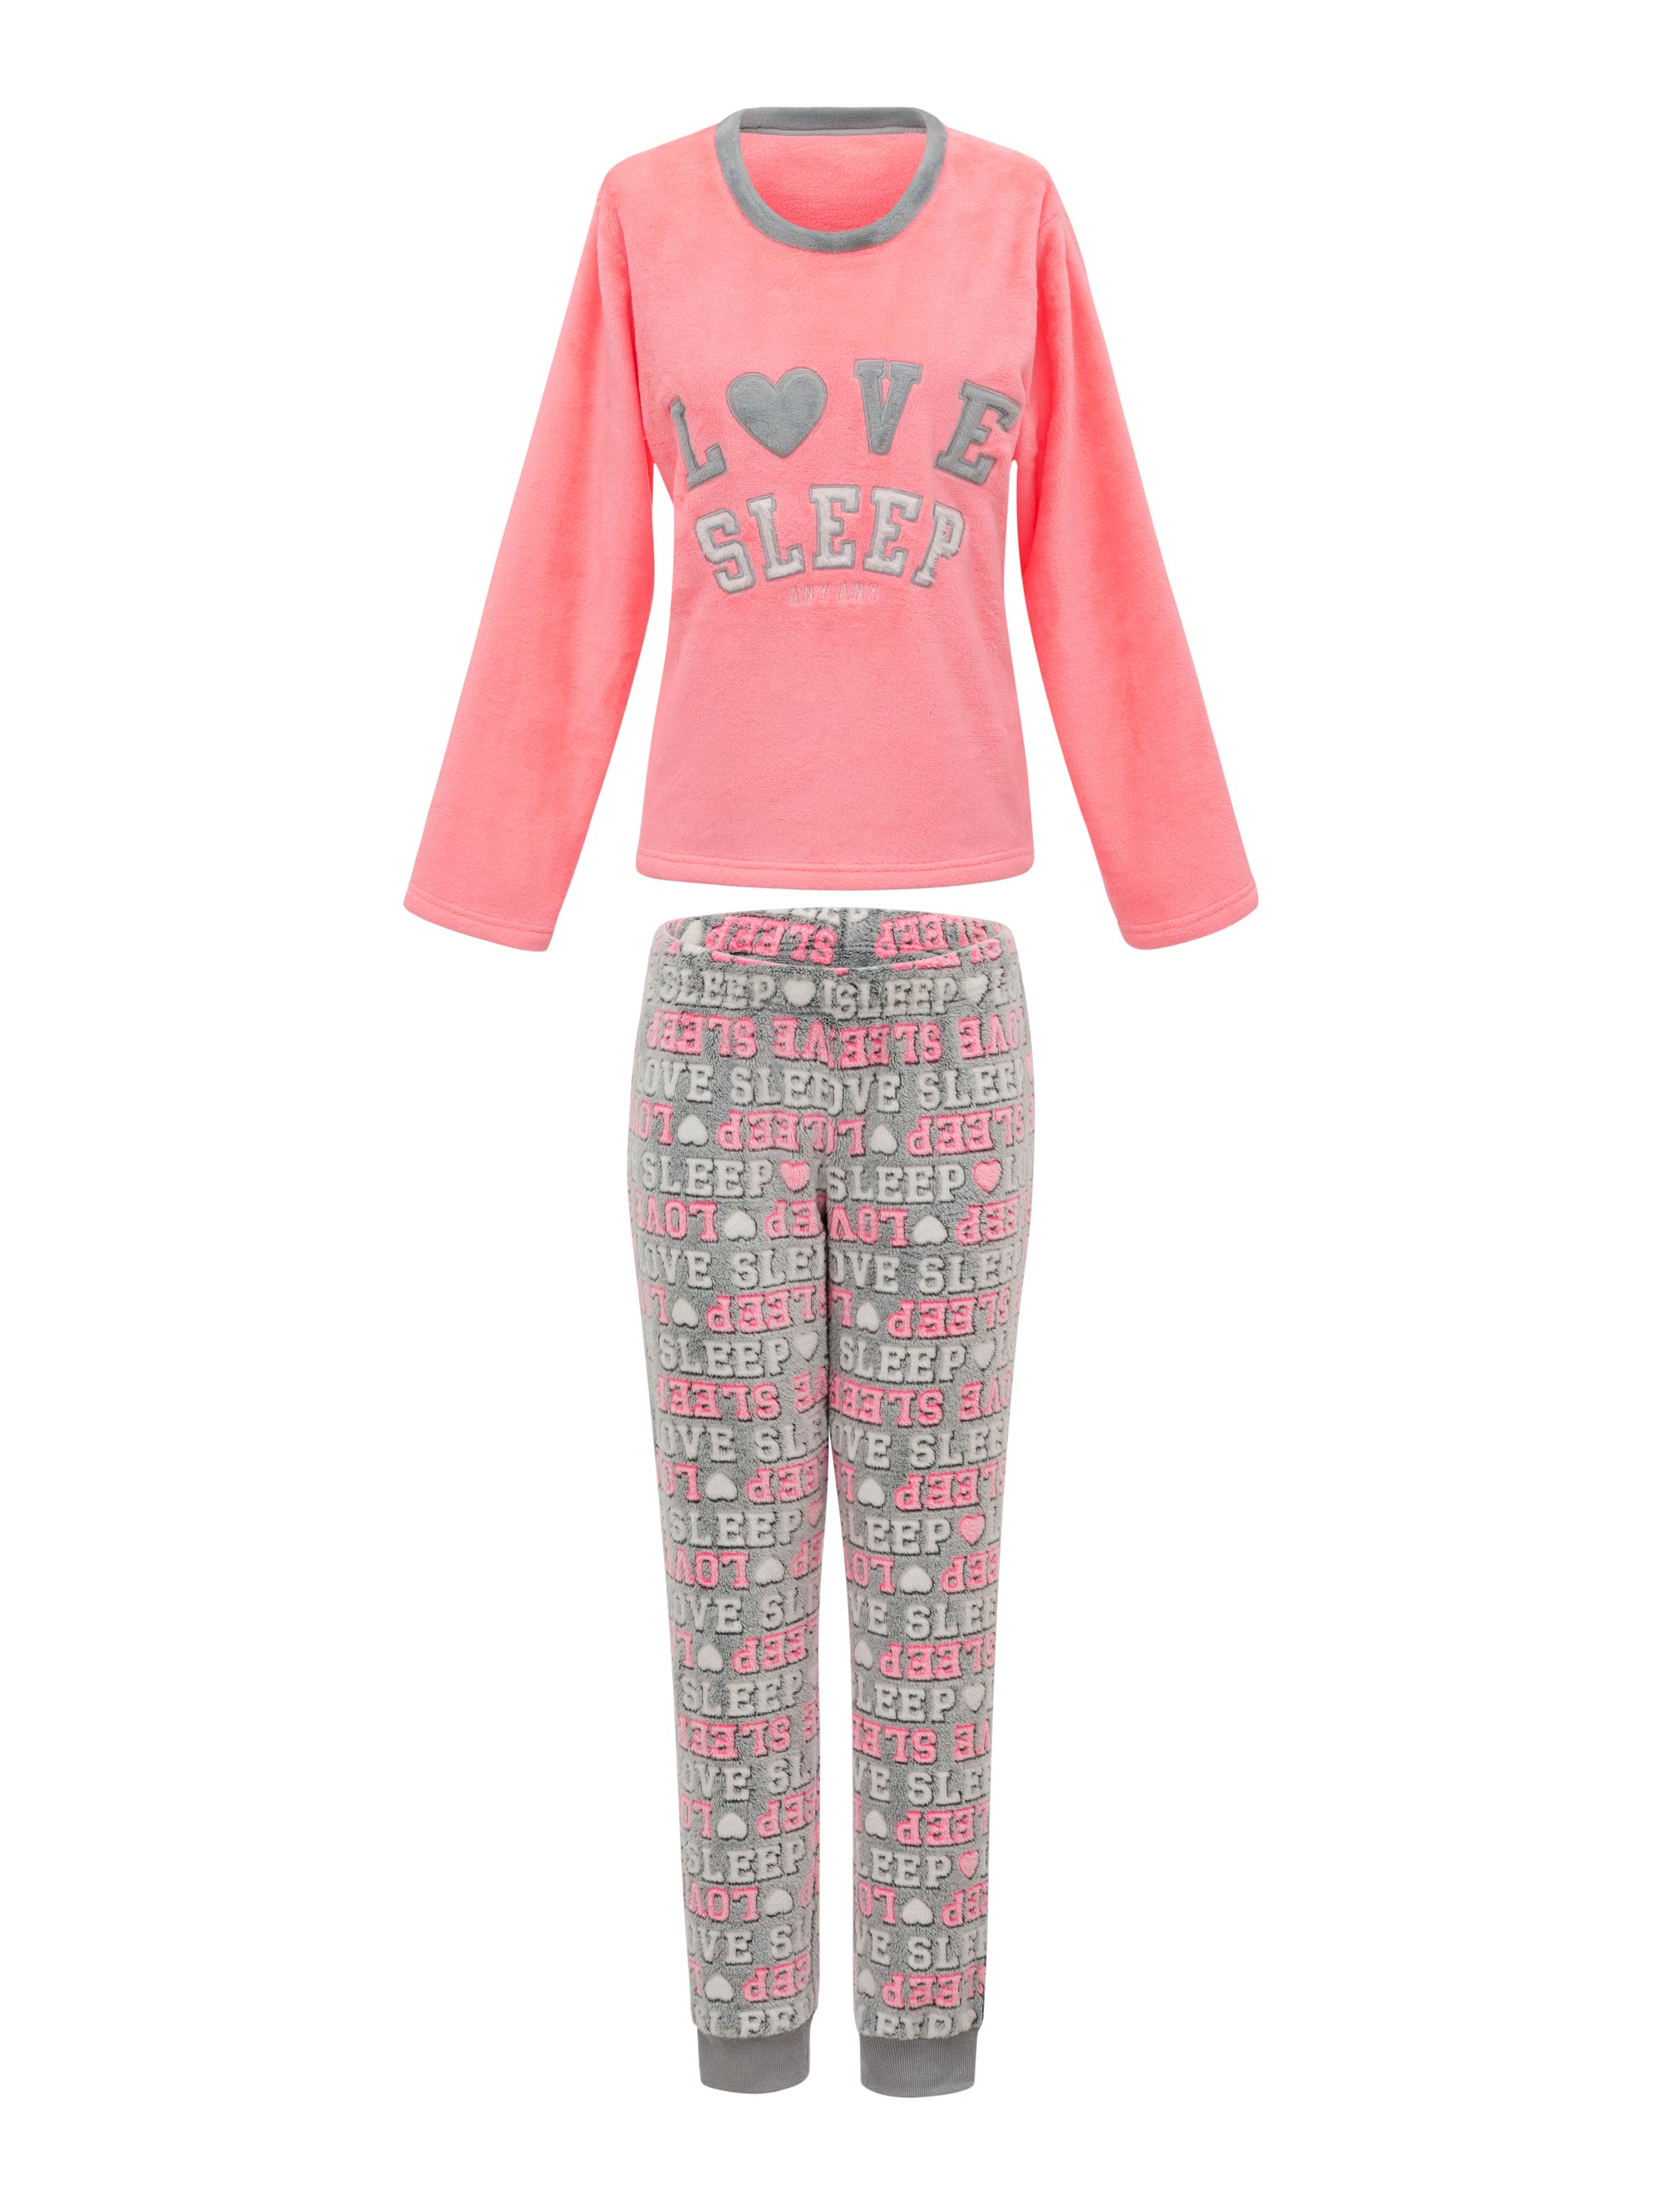 Pijama-Longo-Manga-Longa-Soft-Love-Sleep